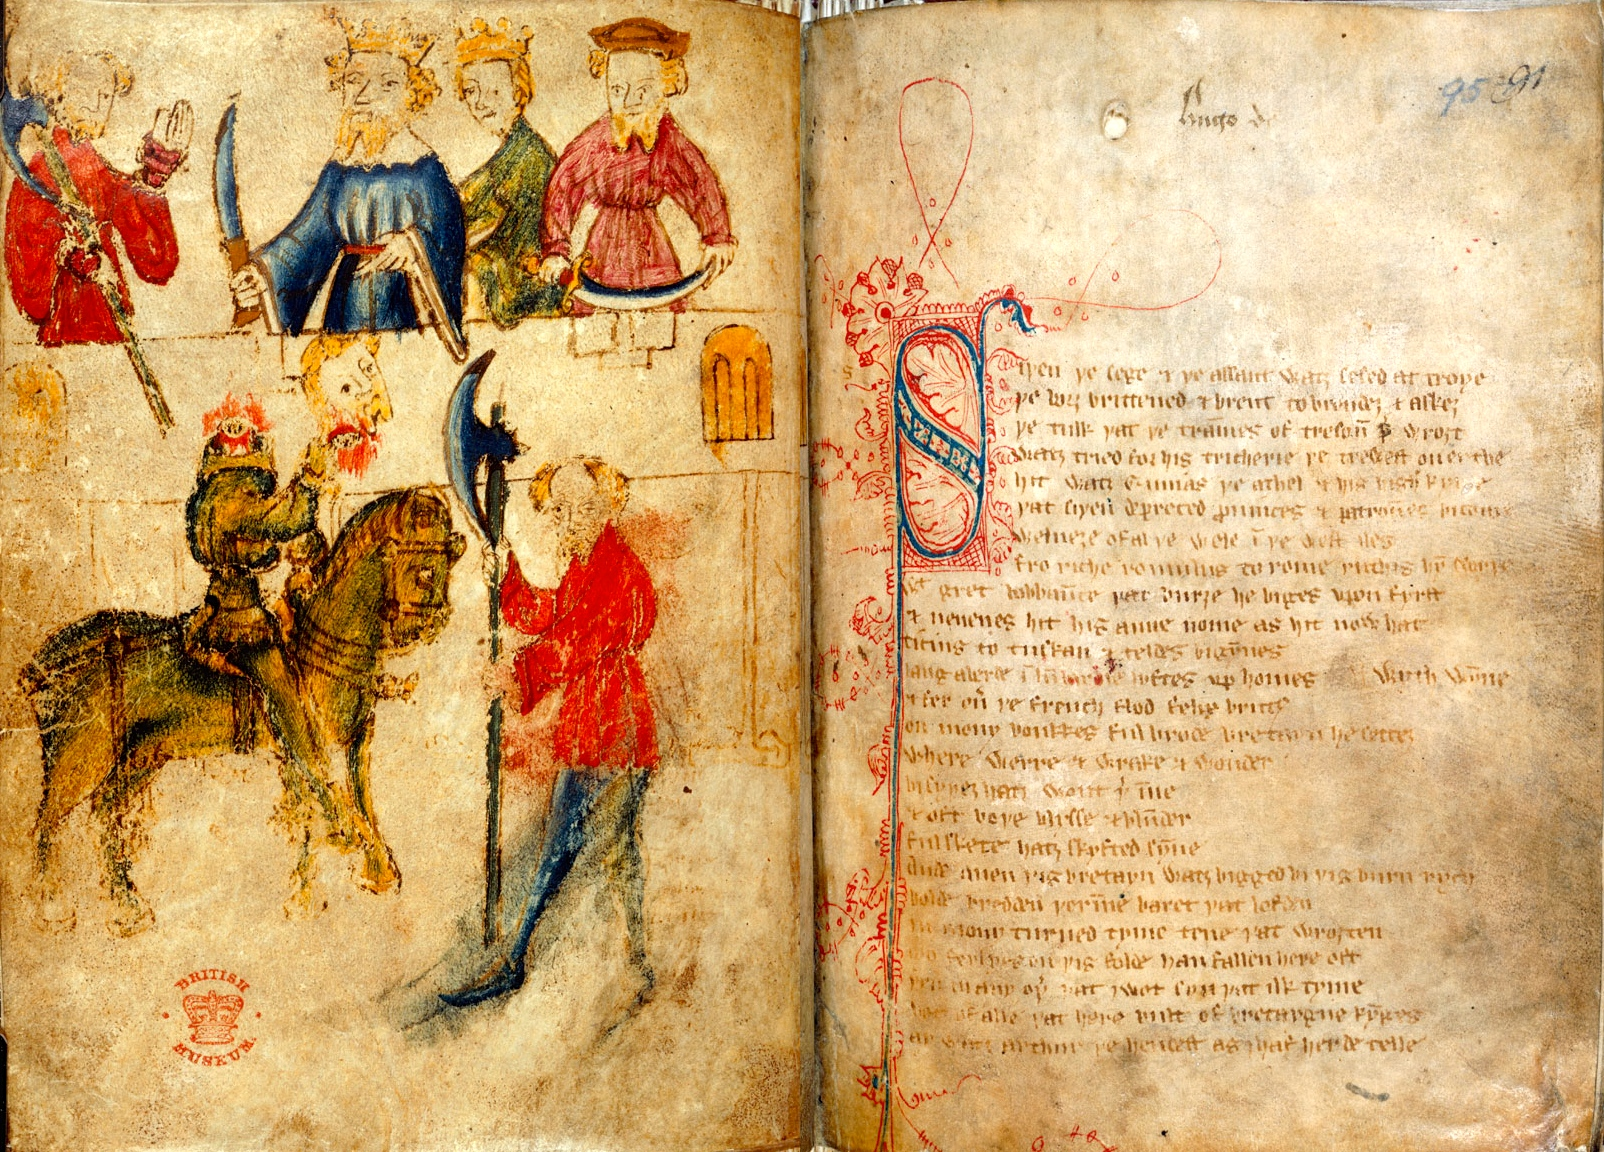 the role and importance of the knights in the medieval era